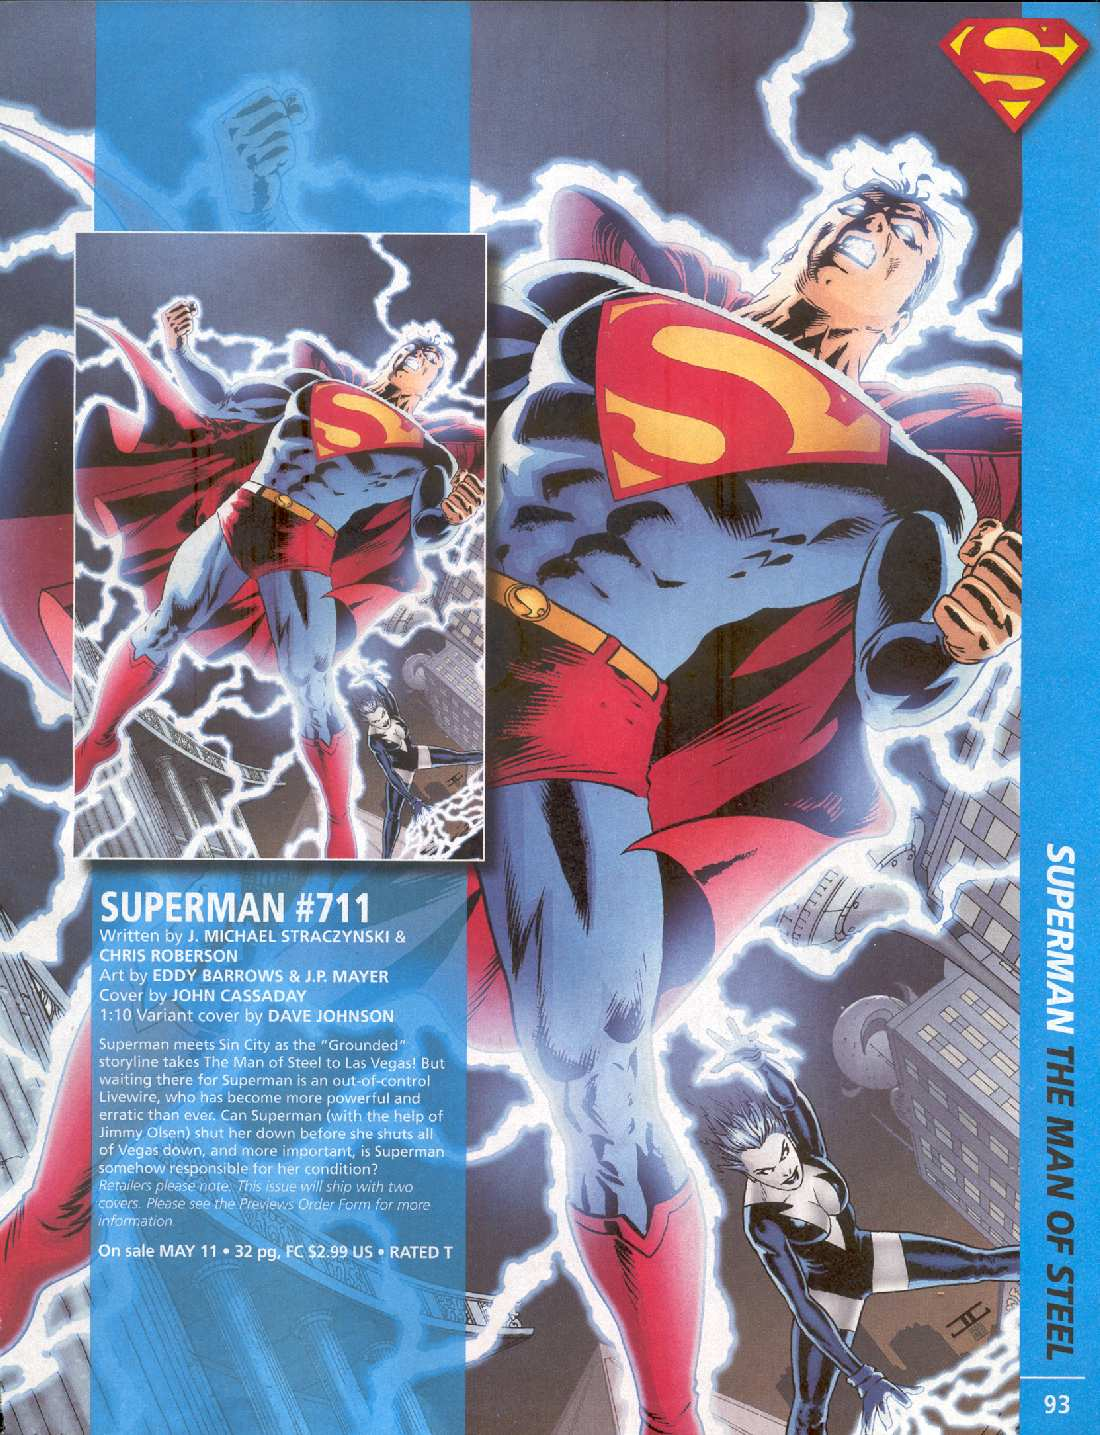 SUPERMAN #711 PREVIEW